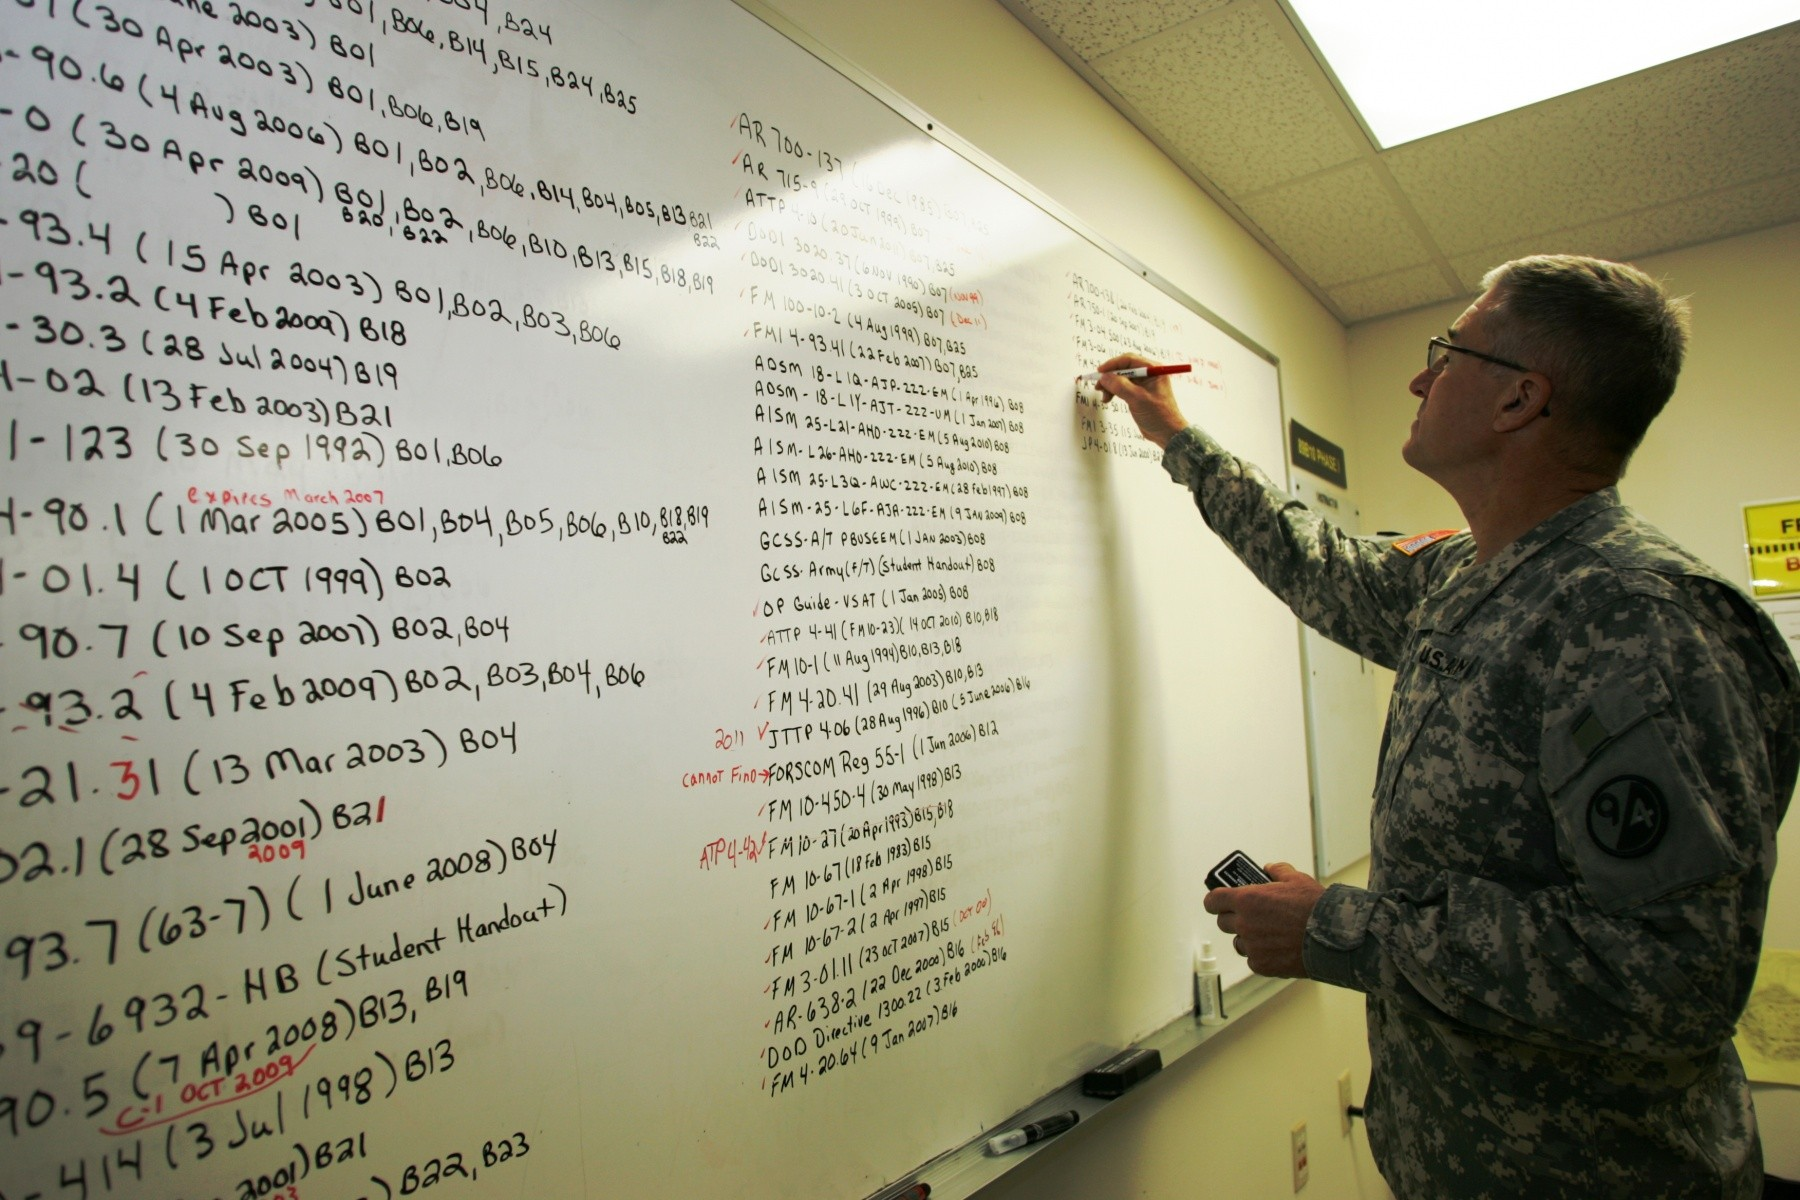 New record set: 155,975 personnel train at Fort McCoy during fiscal